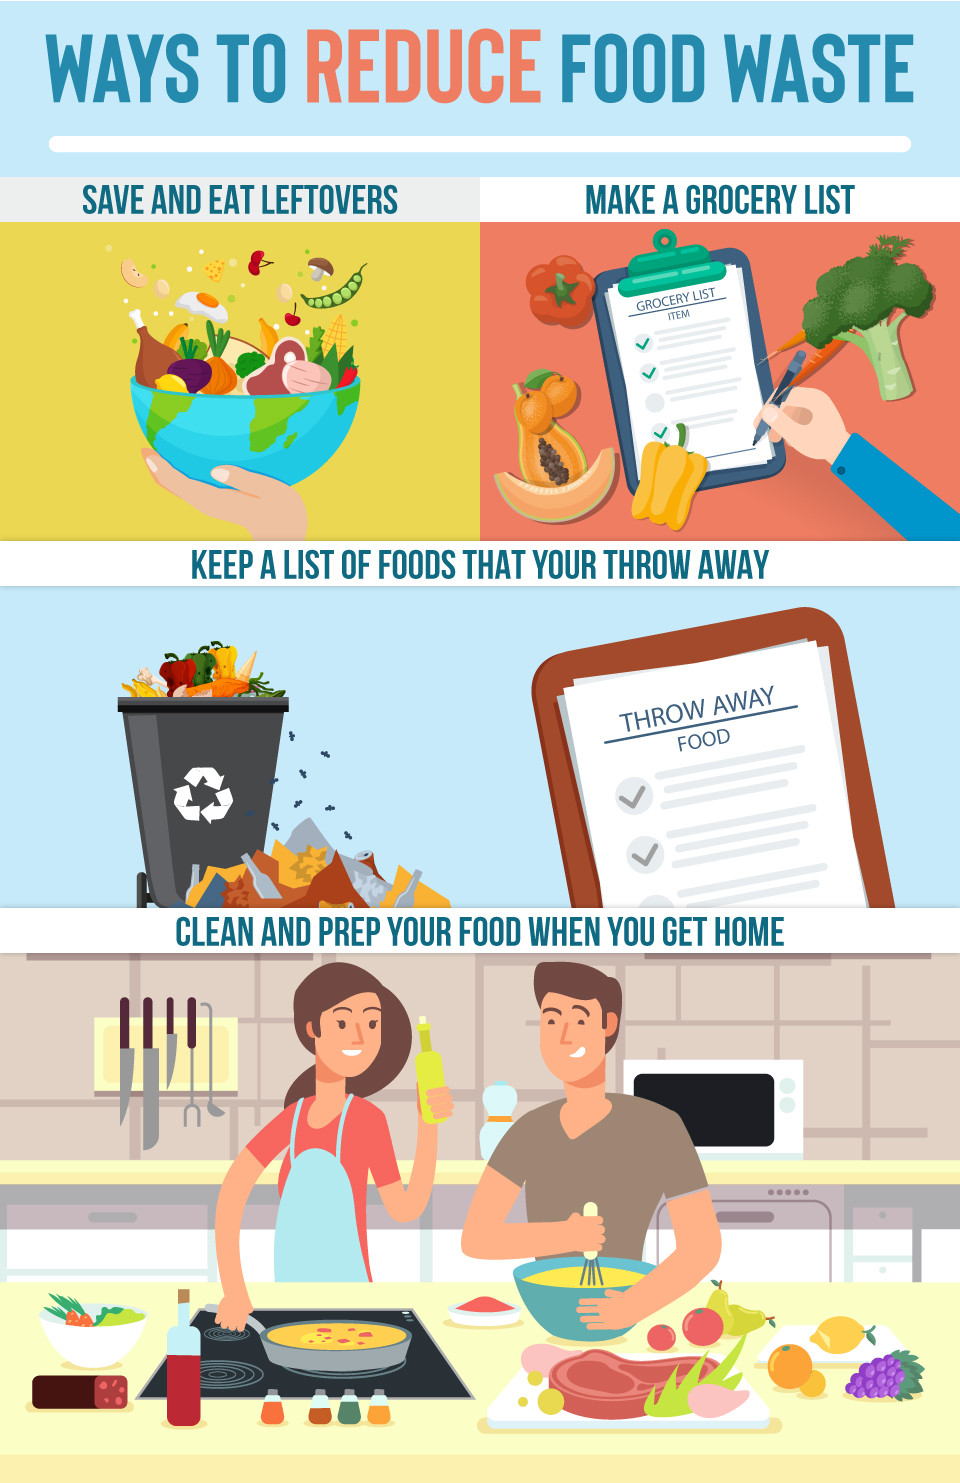 Ways to Reduce Food Waste